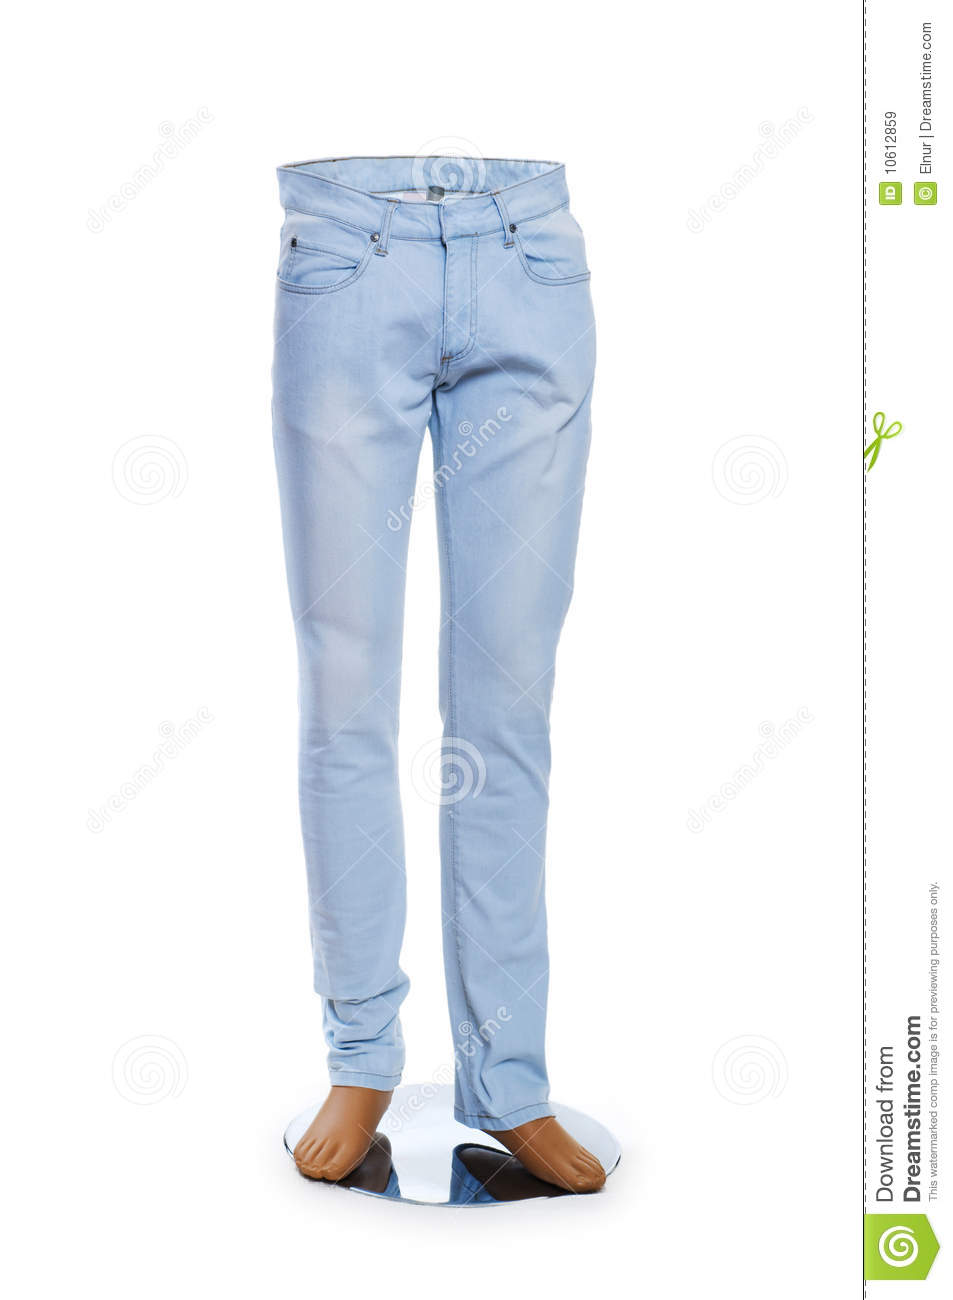 Woman Trousers Isolated Royalty Free Stock Images Image 10612859